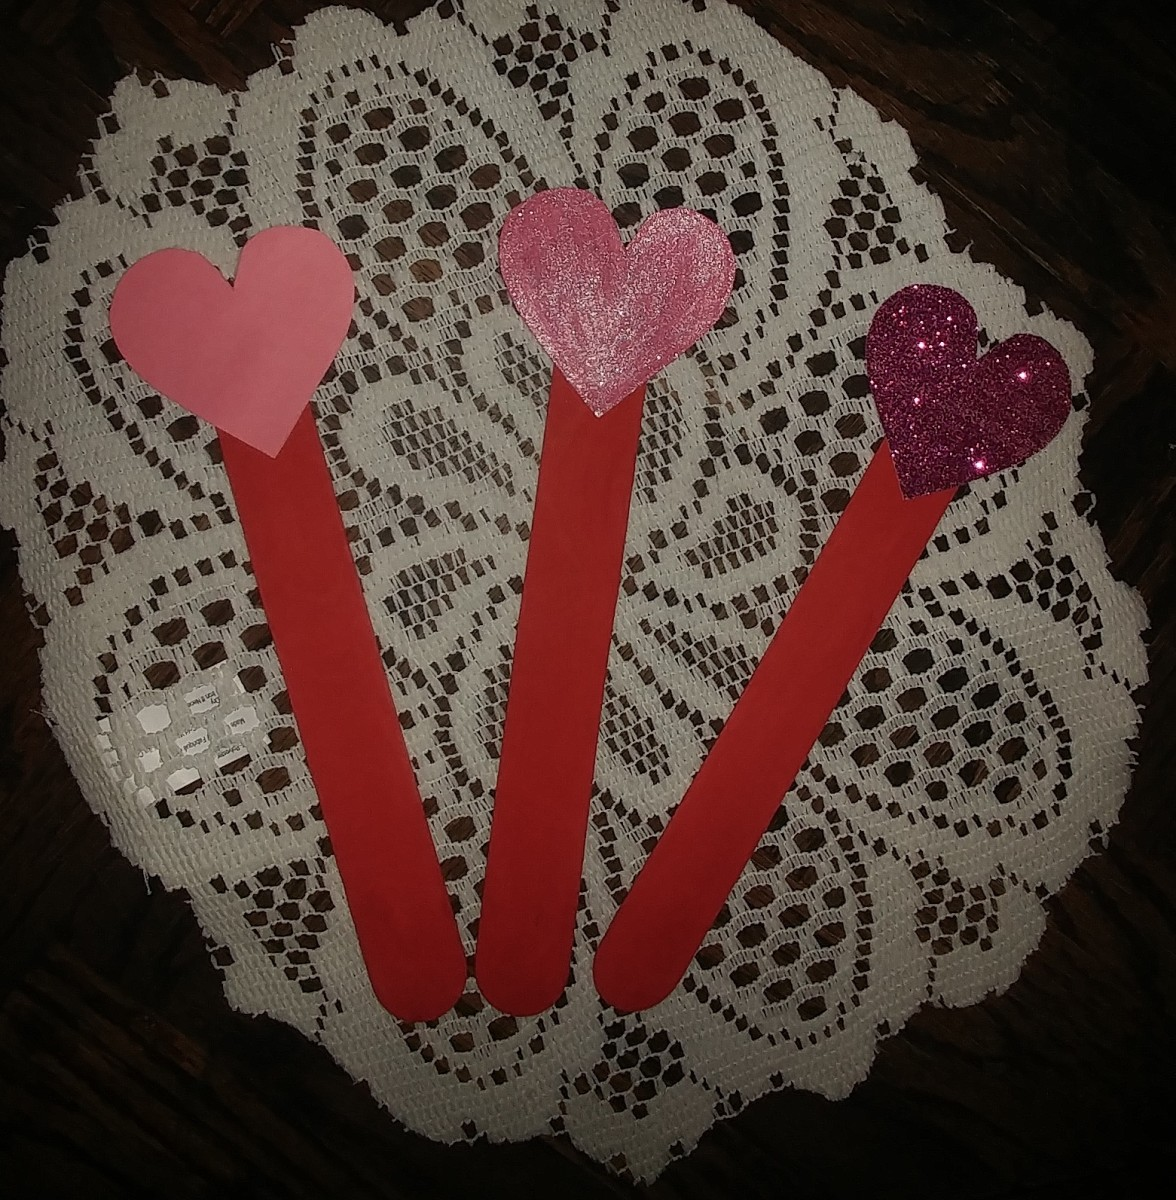 lollipop heart crafts can be used as a festive decoration. Tied to a box of chocolates personalizes a valentine gift.